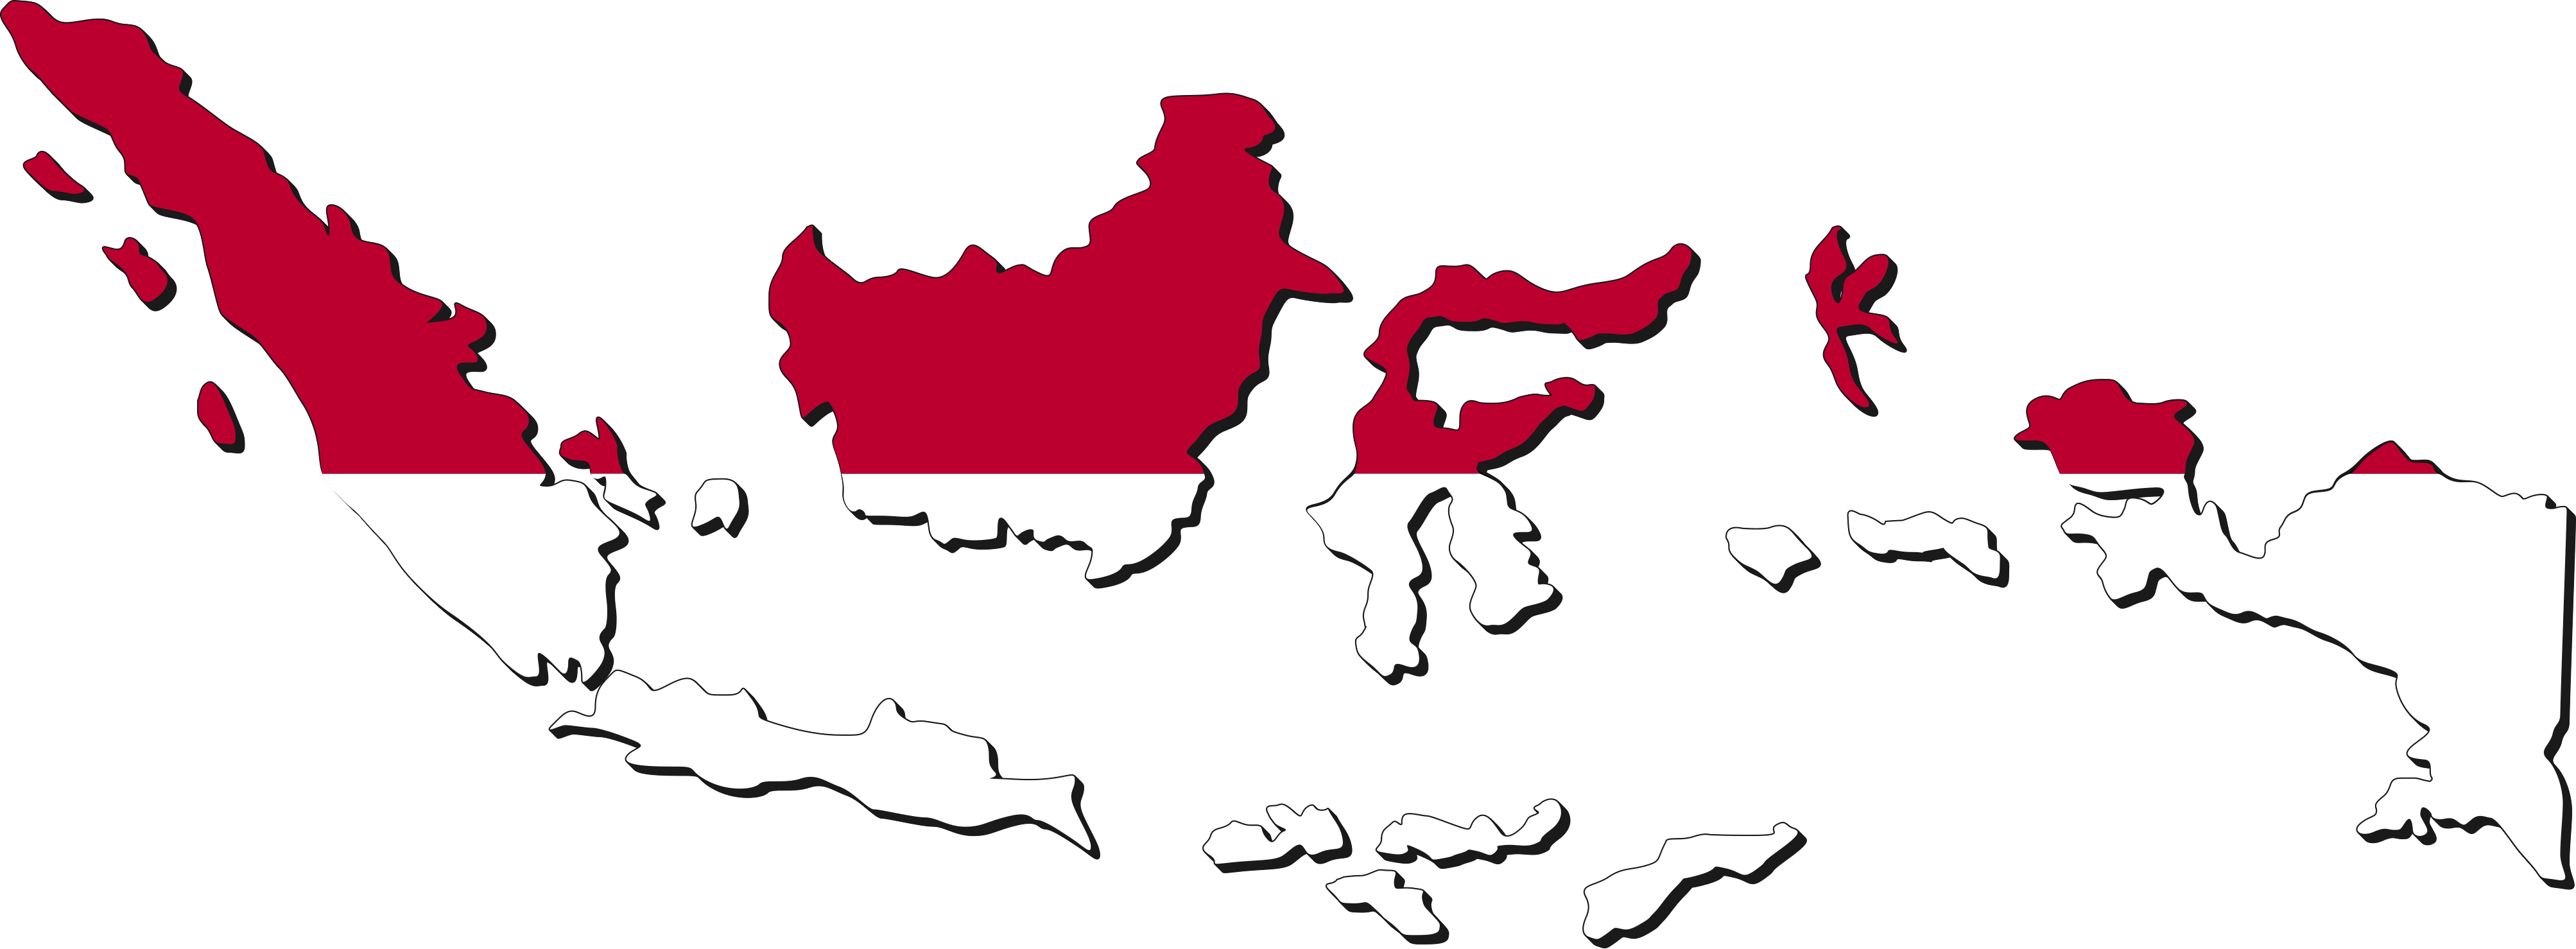 Flag of globe map. City clipart indonesia